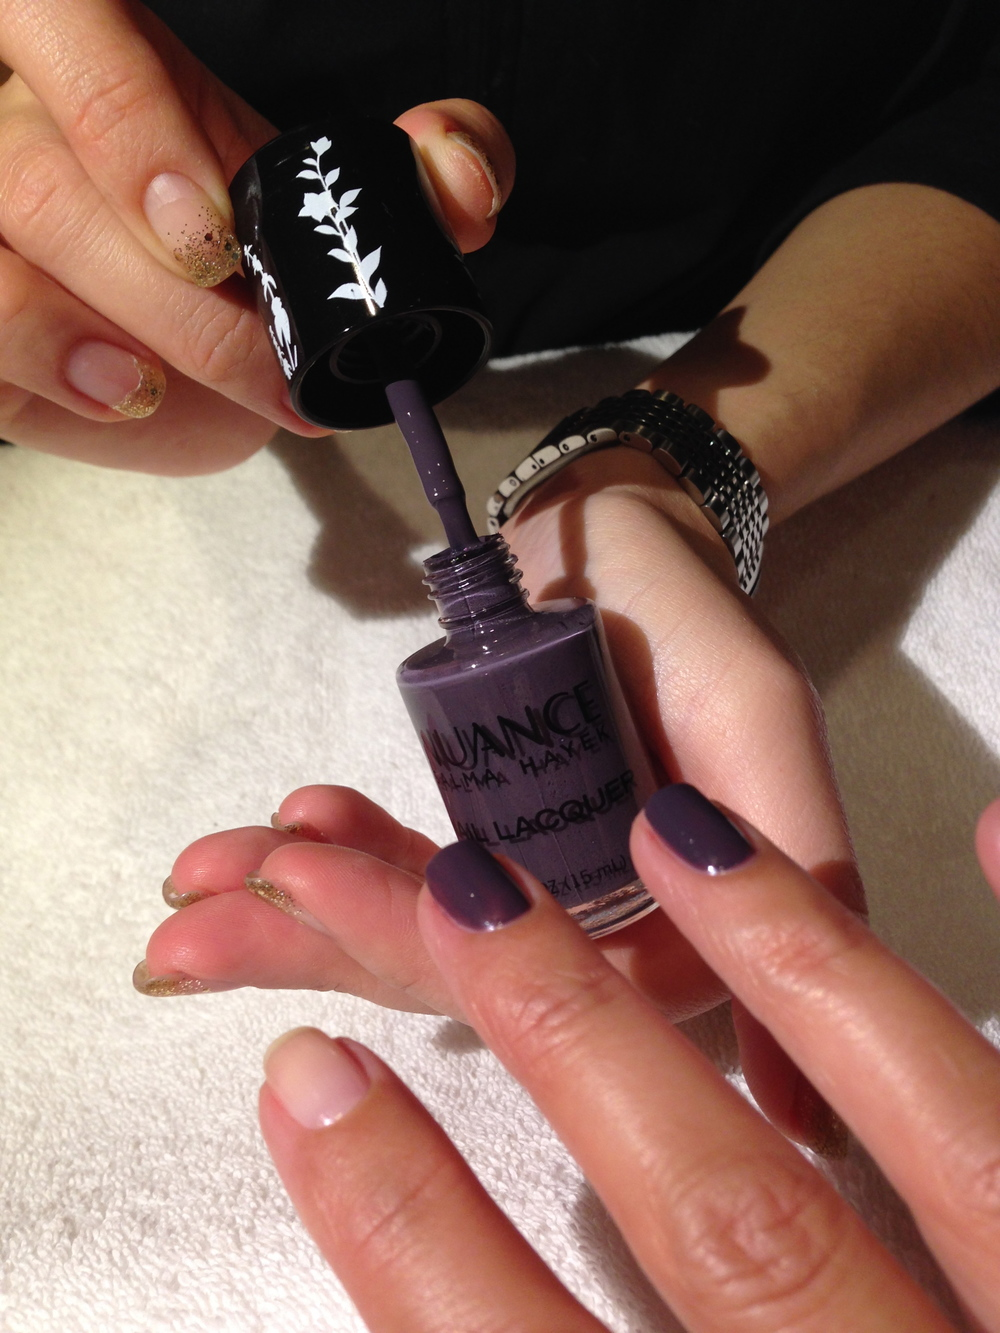 Nuance Salma Hayel Nail Lacquer, Vapor, $5.99. Available at CVS.